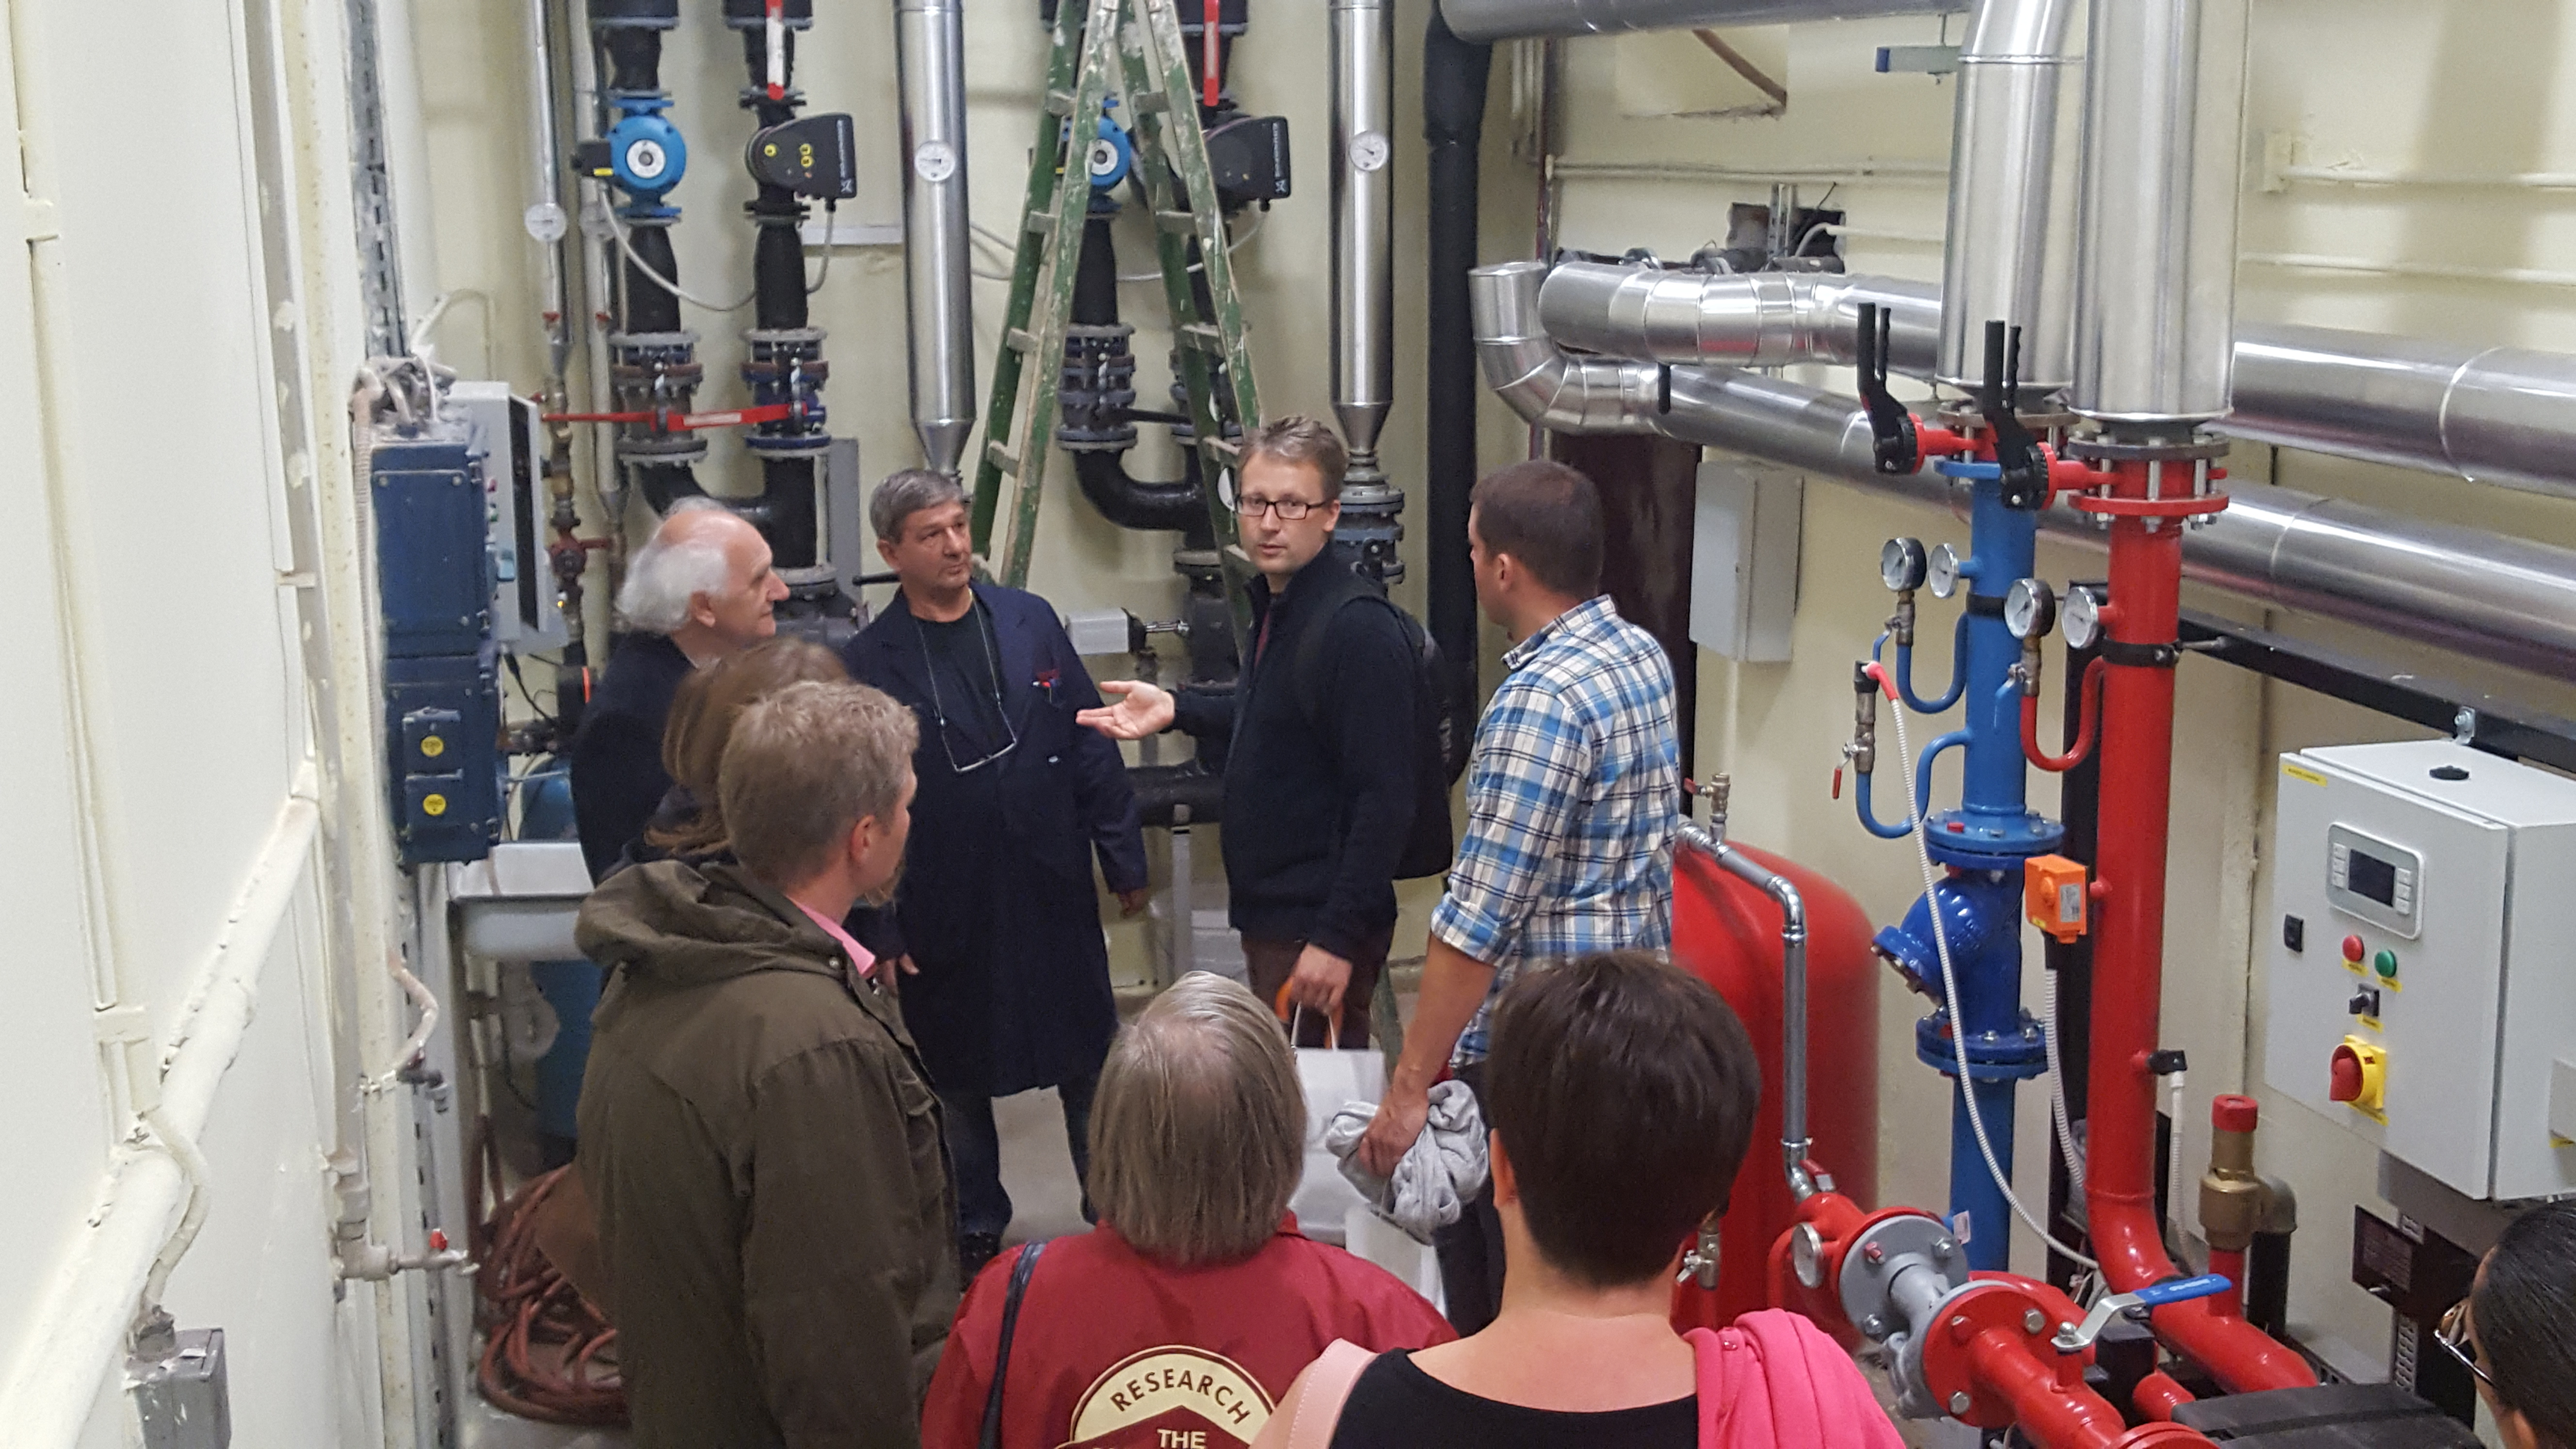 Group looking at heating systenm in Maribor